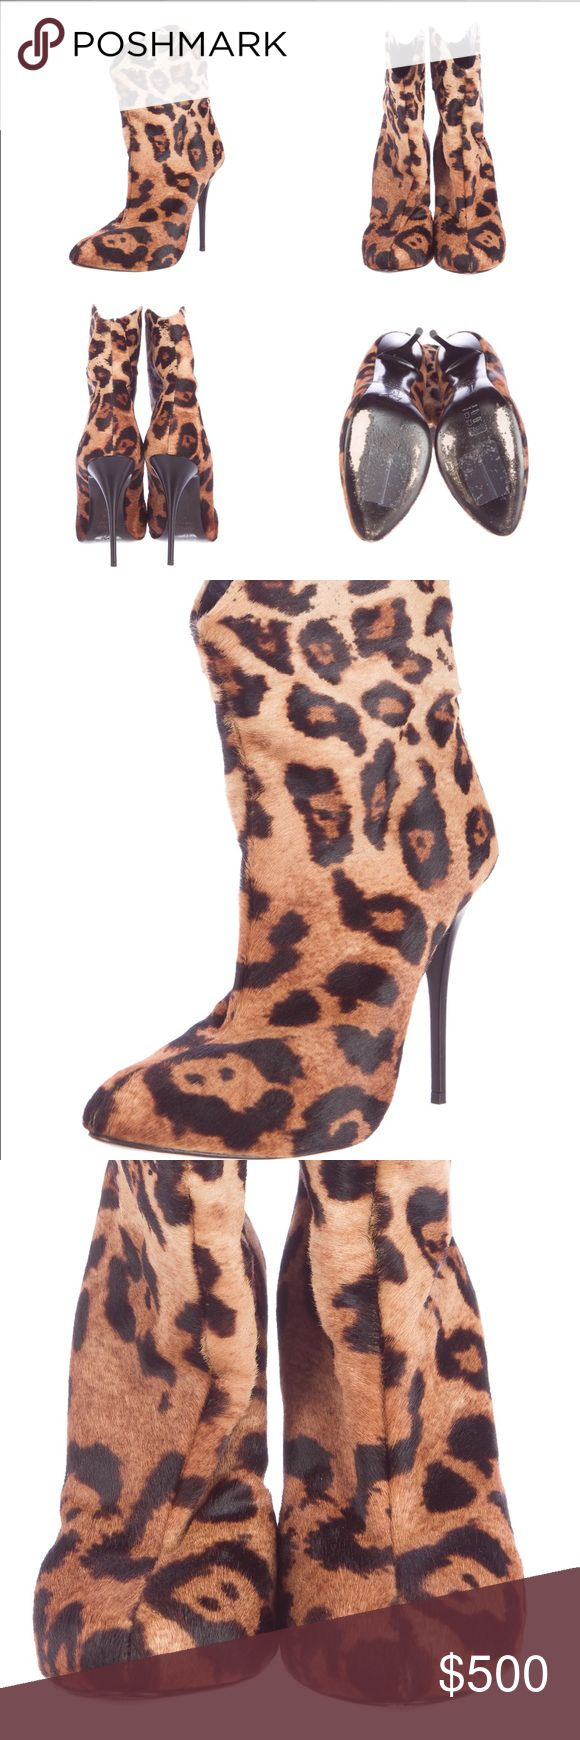 Giuseppe Zanotti boots animal print Tan and brown gradient ponyhair Giuseppe Zanotti ankle boots with leopard print throughout, pointed toes and resin heels. Giuseppe Zanotti Shoes Ankle Boots & Booties